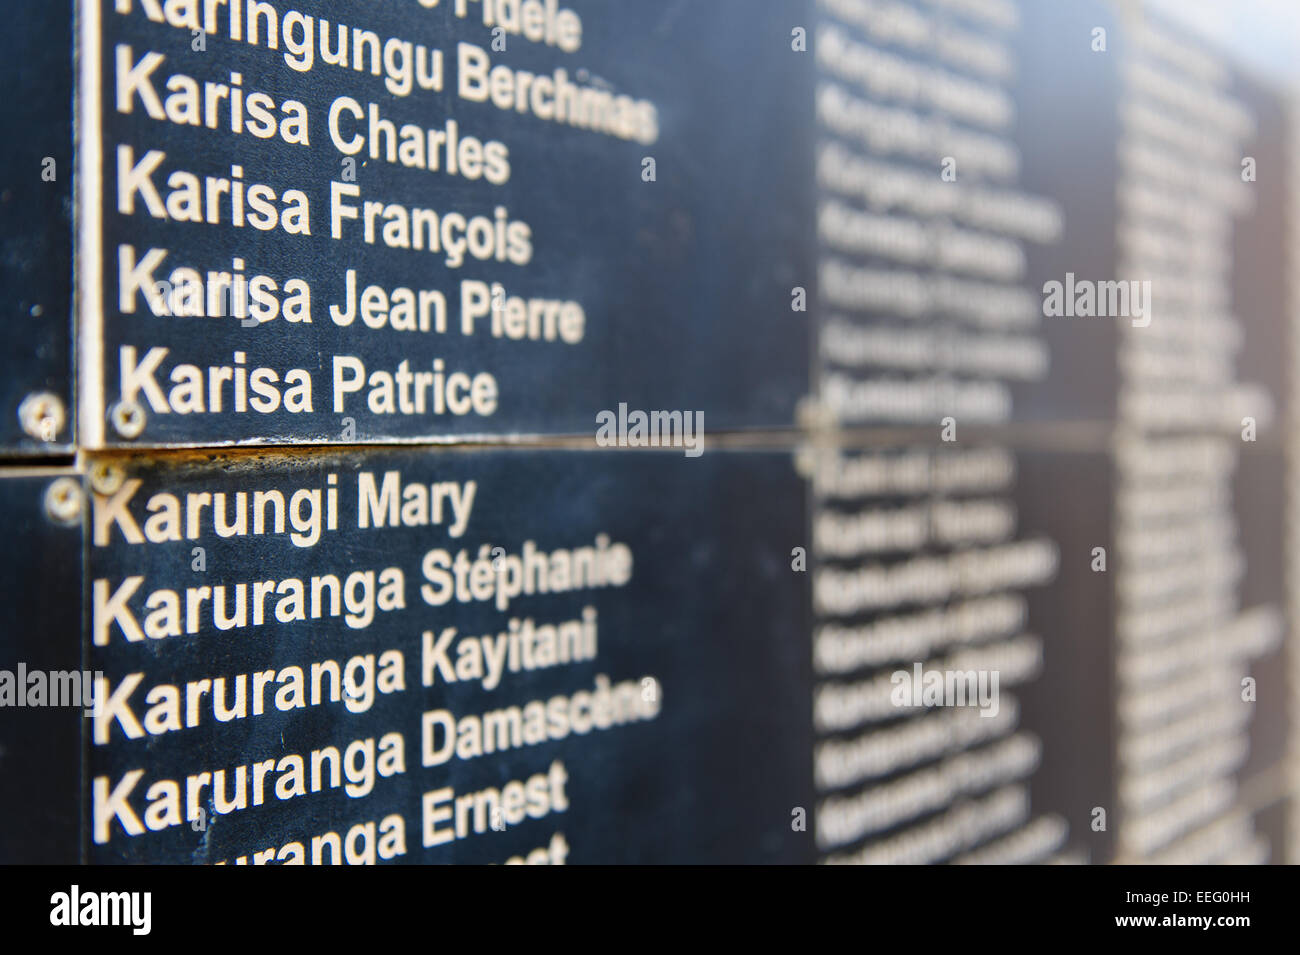 The names of the victims of the 1994 genocide in Rwanda. Kigali Genocide Memorial Centre. Kigali, Rwanda. - Stock Image